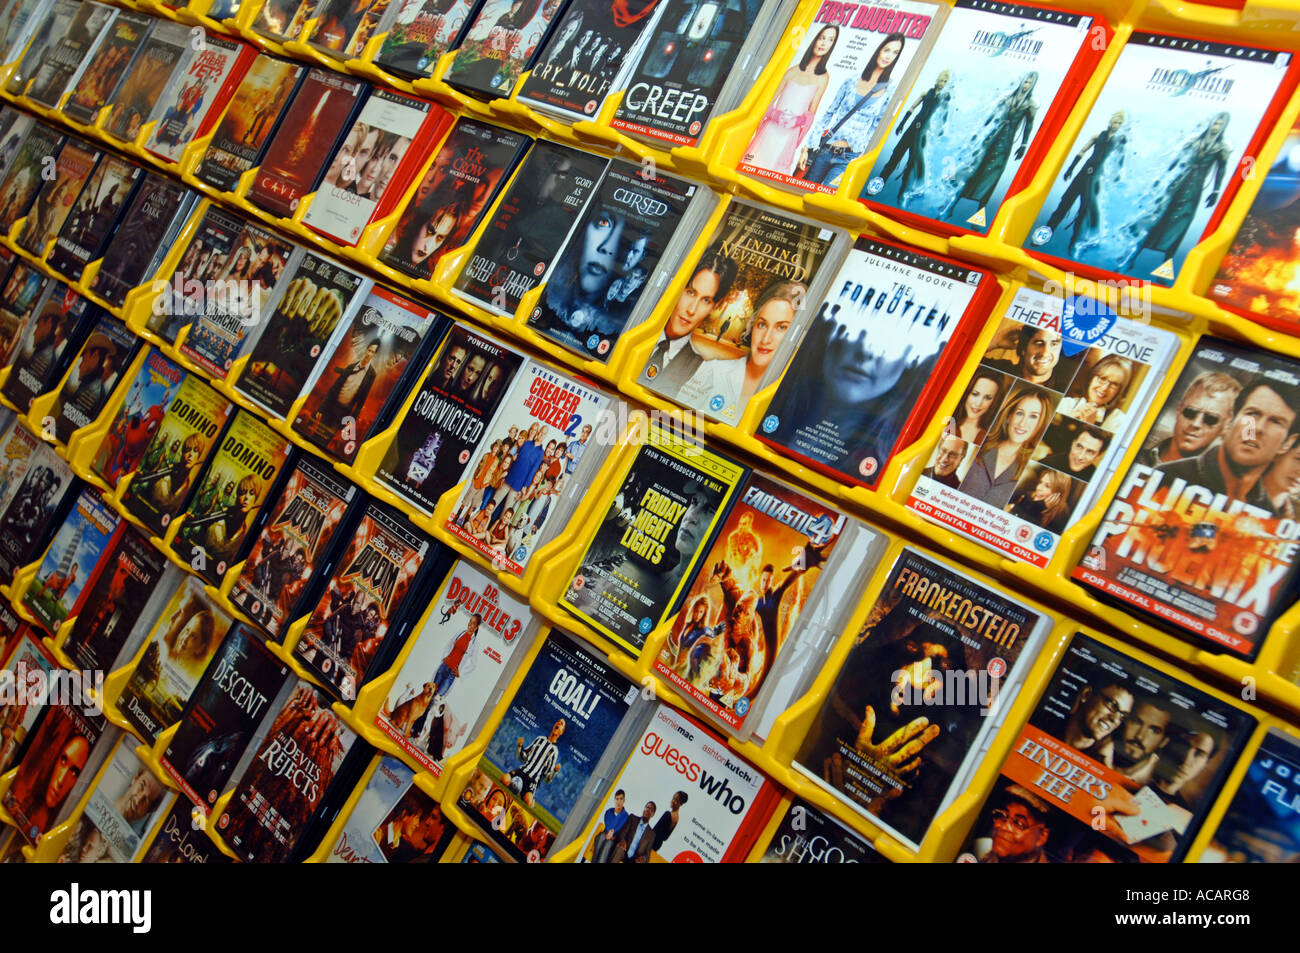 DVD rental store Stock Photo: 7484231